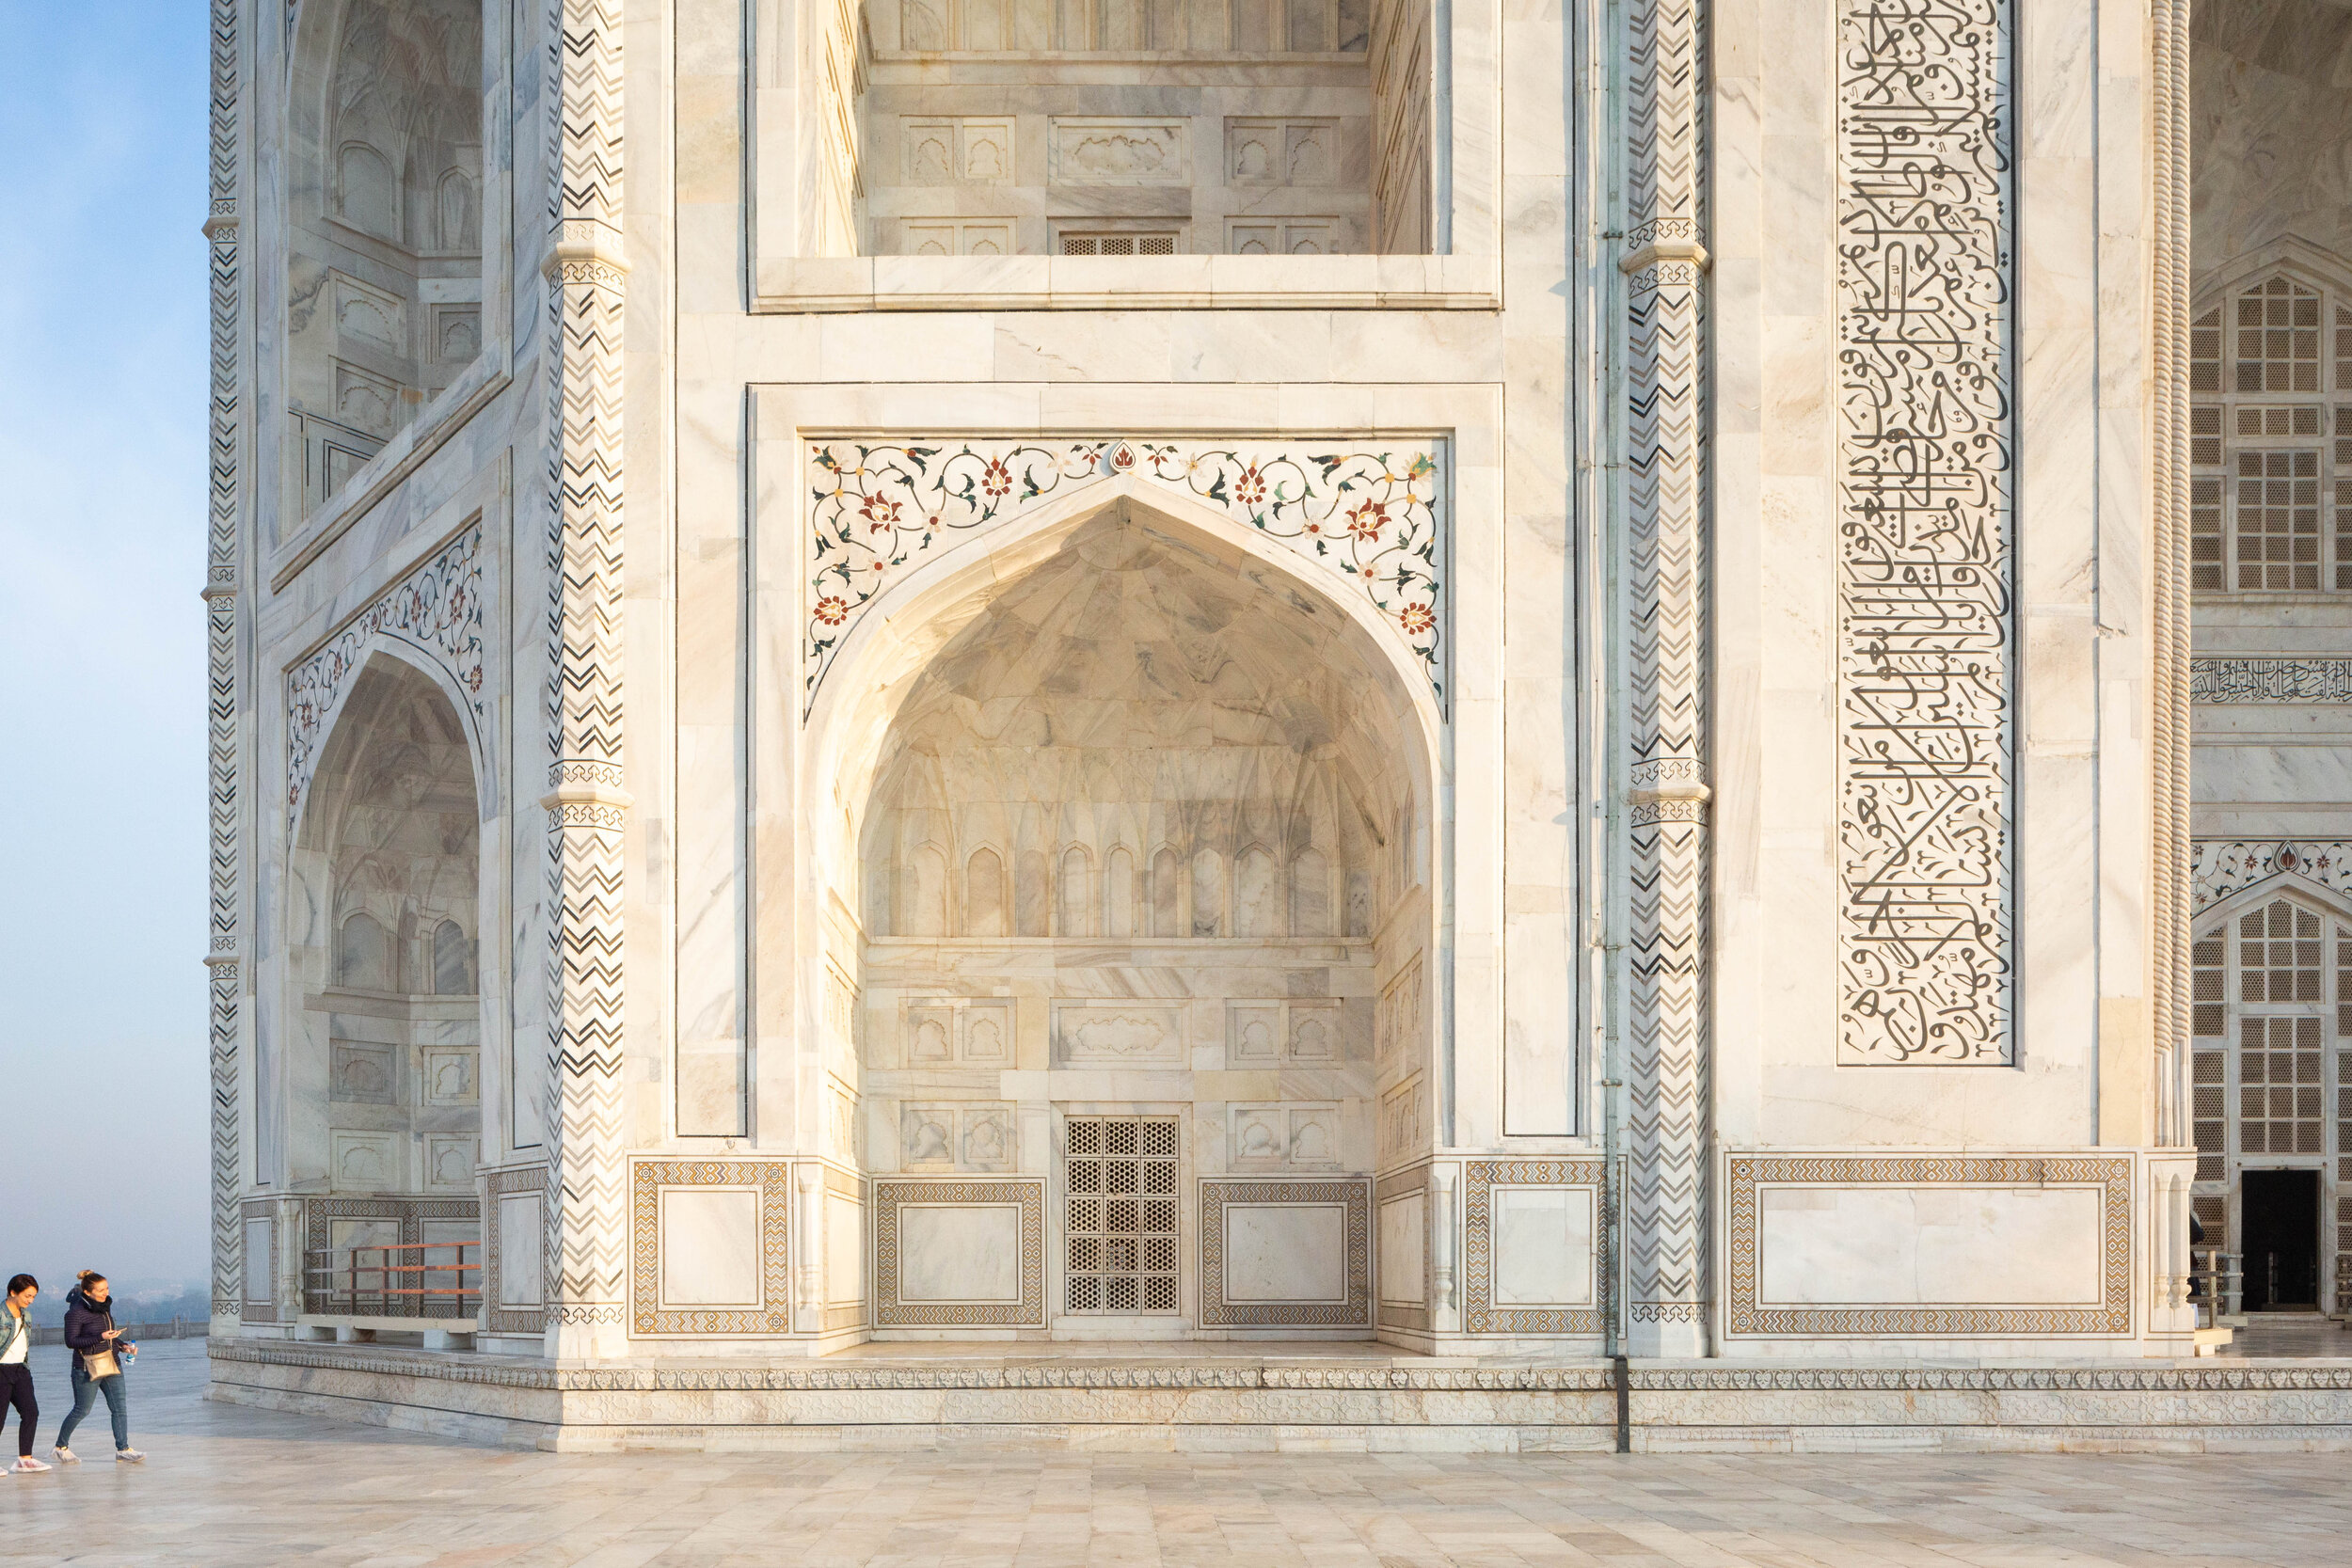 Wall of the tomb, Taj Mahal 190210 274, image by Andrew Campbell Nelson.jpg